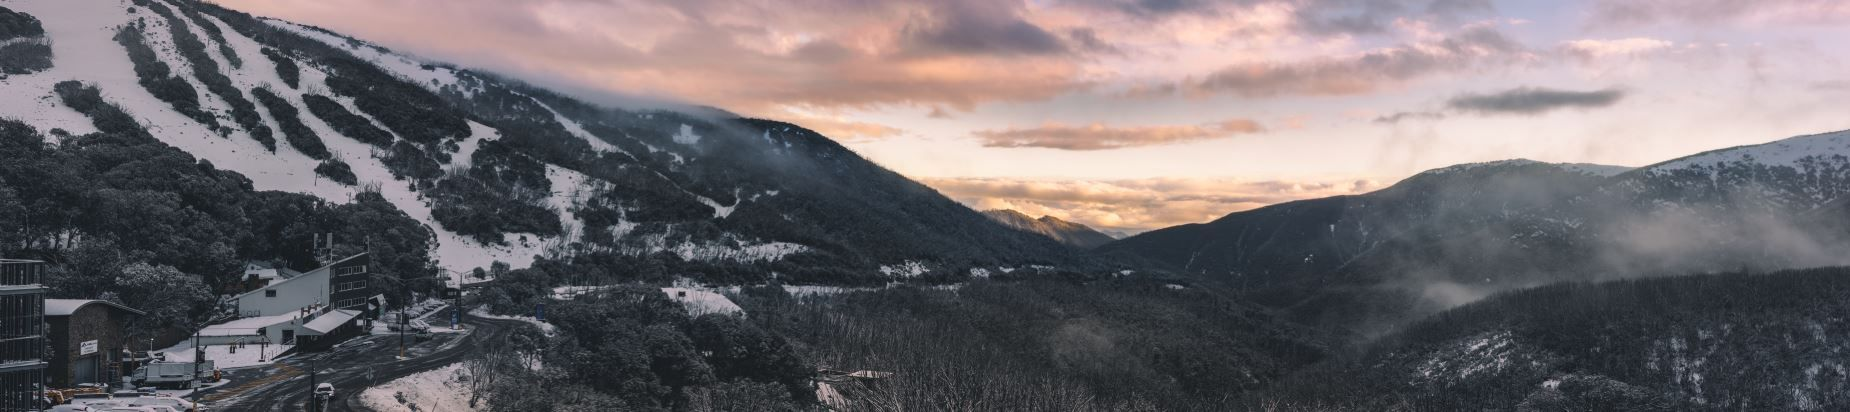 Sunrise Panorama Falls Creek.JPG